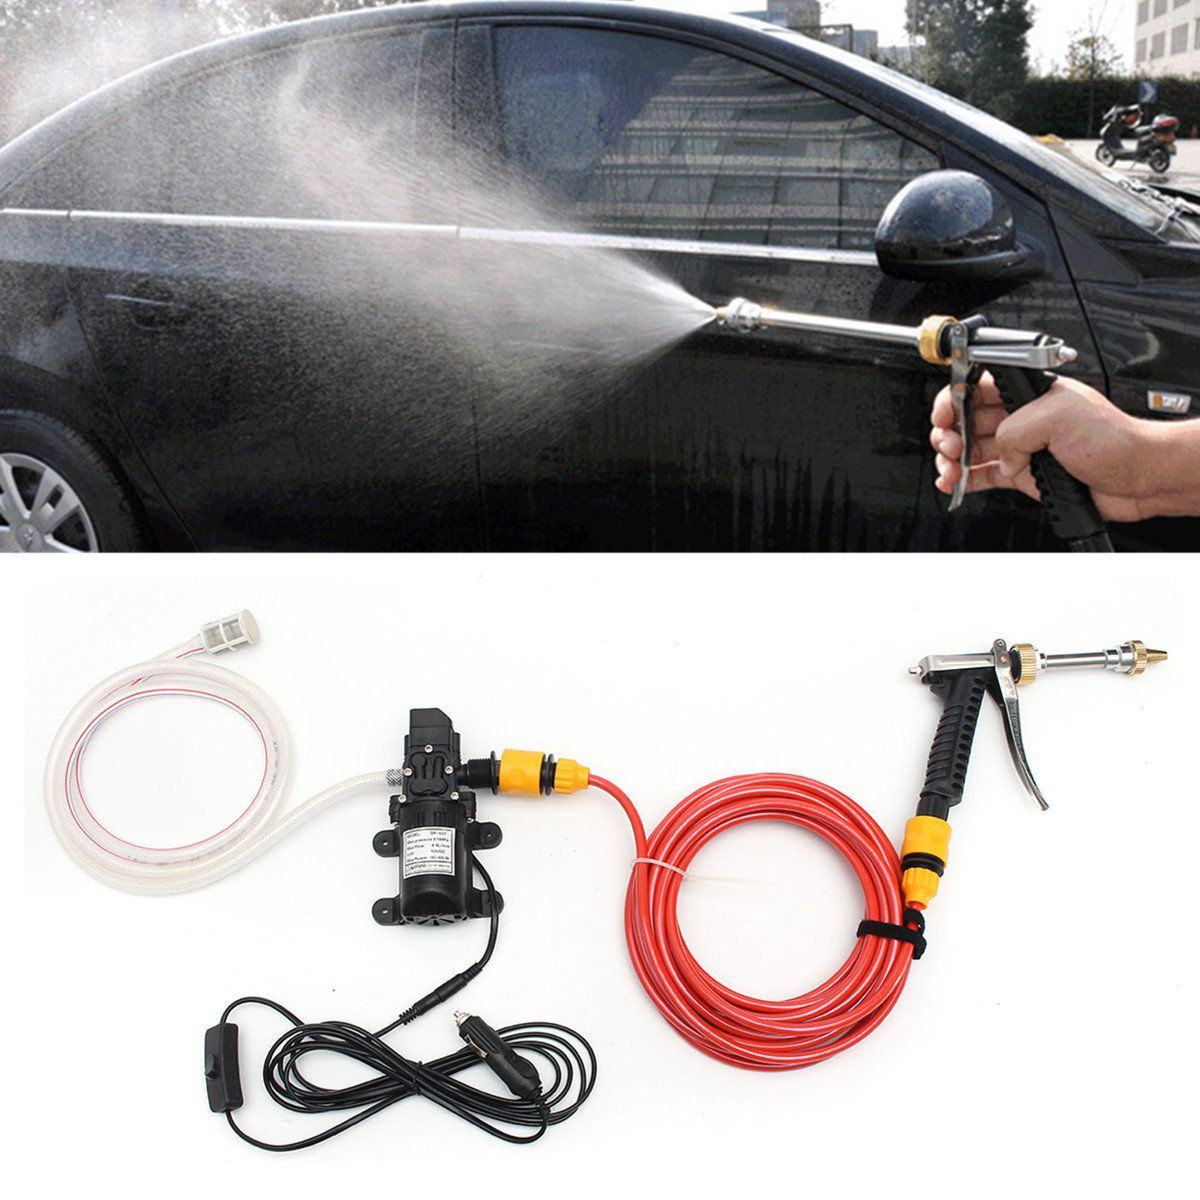 Us 33 99 12v 60w Electric Car Wash Pump Water Cleaner Washer Pressure Sprayer Tool Kit Electric Wash Pump Water Cleaner Washer Pre Clean Washer Car Wash Car Washer